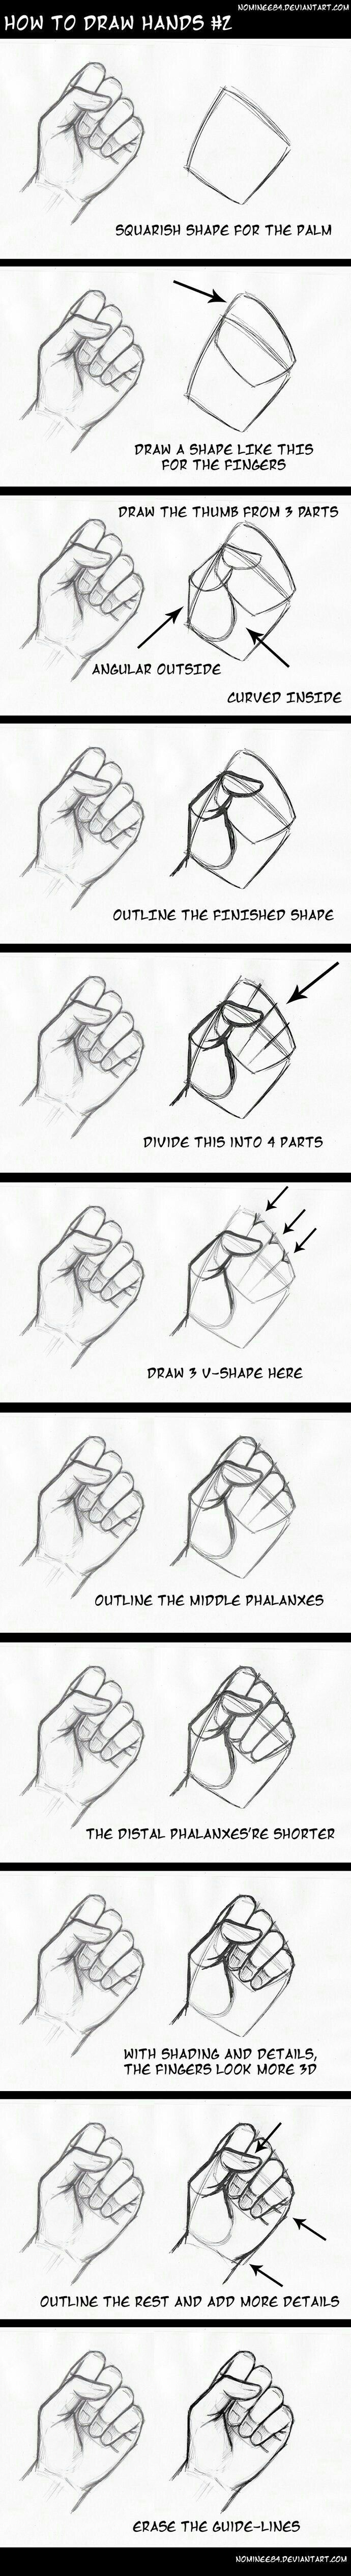 How to Draw Hands, text; How to Draw Manga/Anime